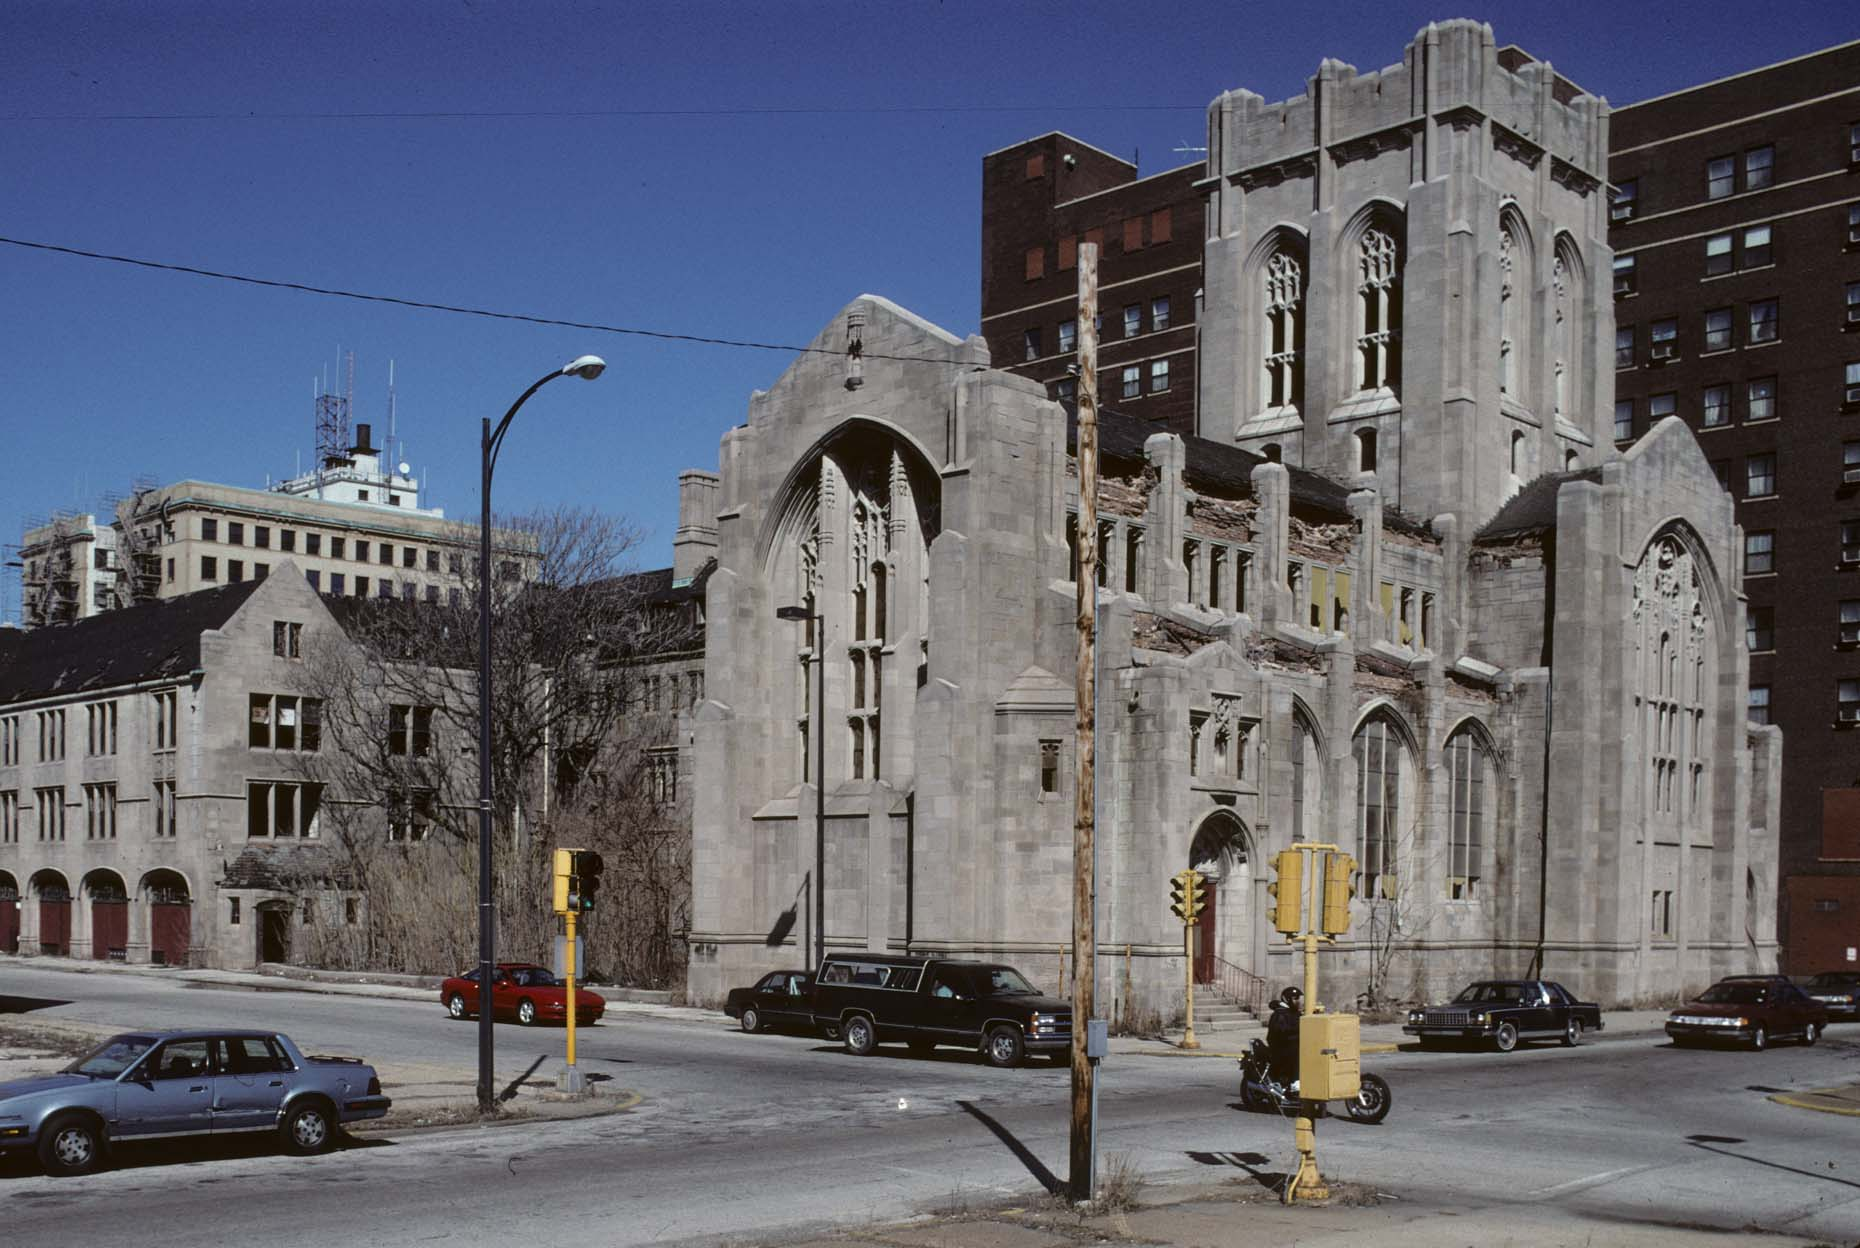 15_City Methodist Church, Washington St. at 6th Ave., Gary, 1997_.jpg